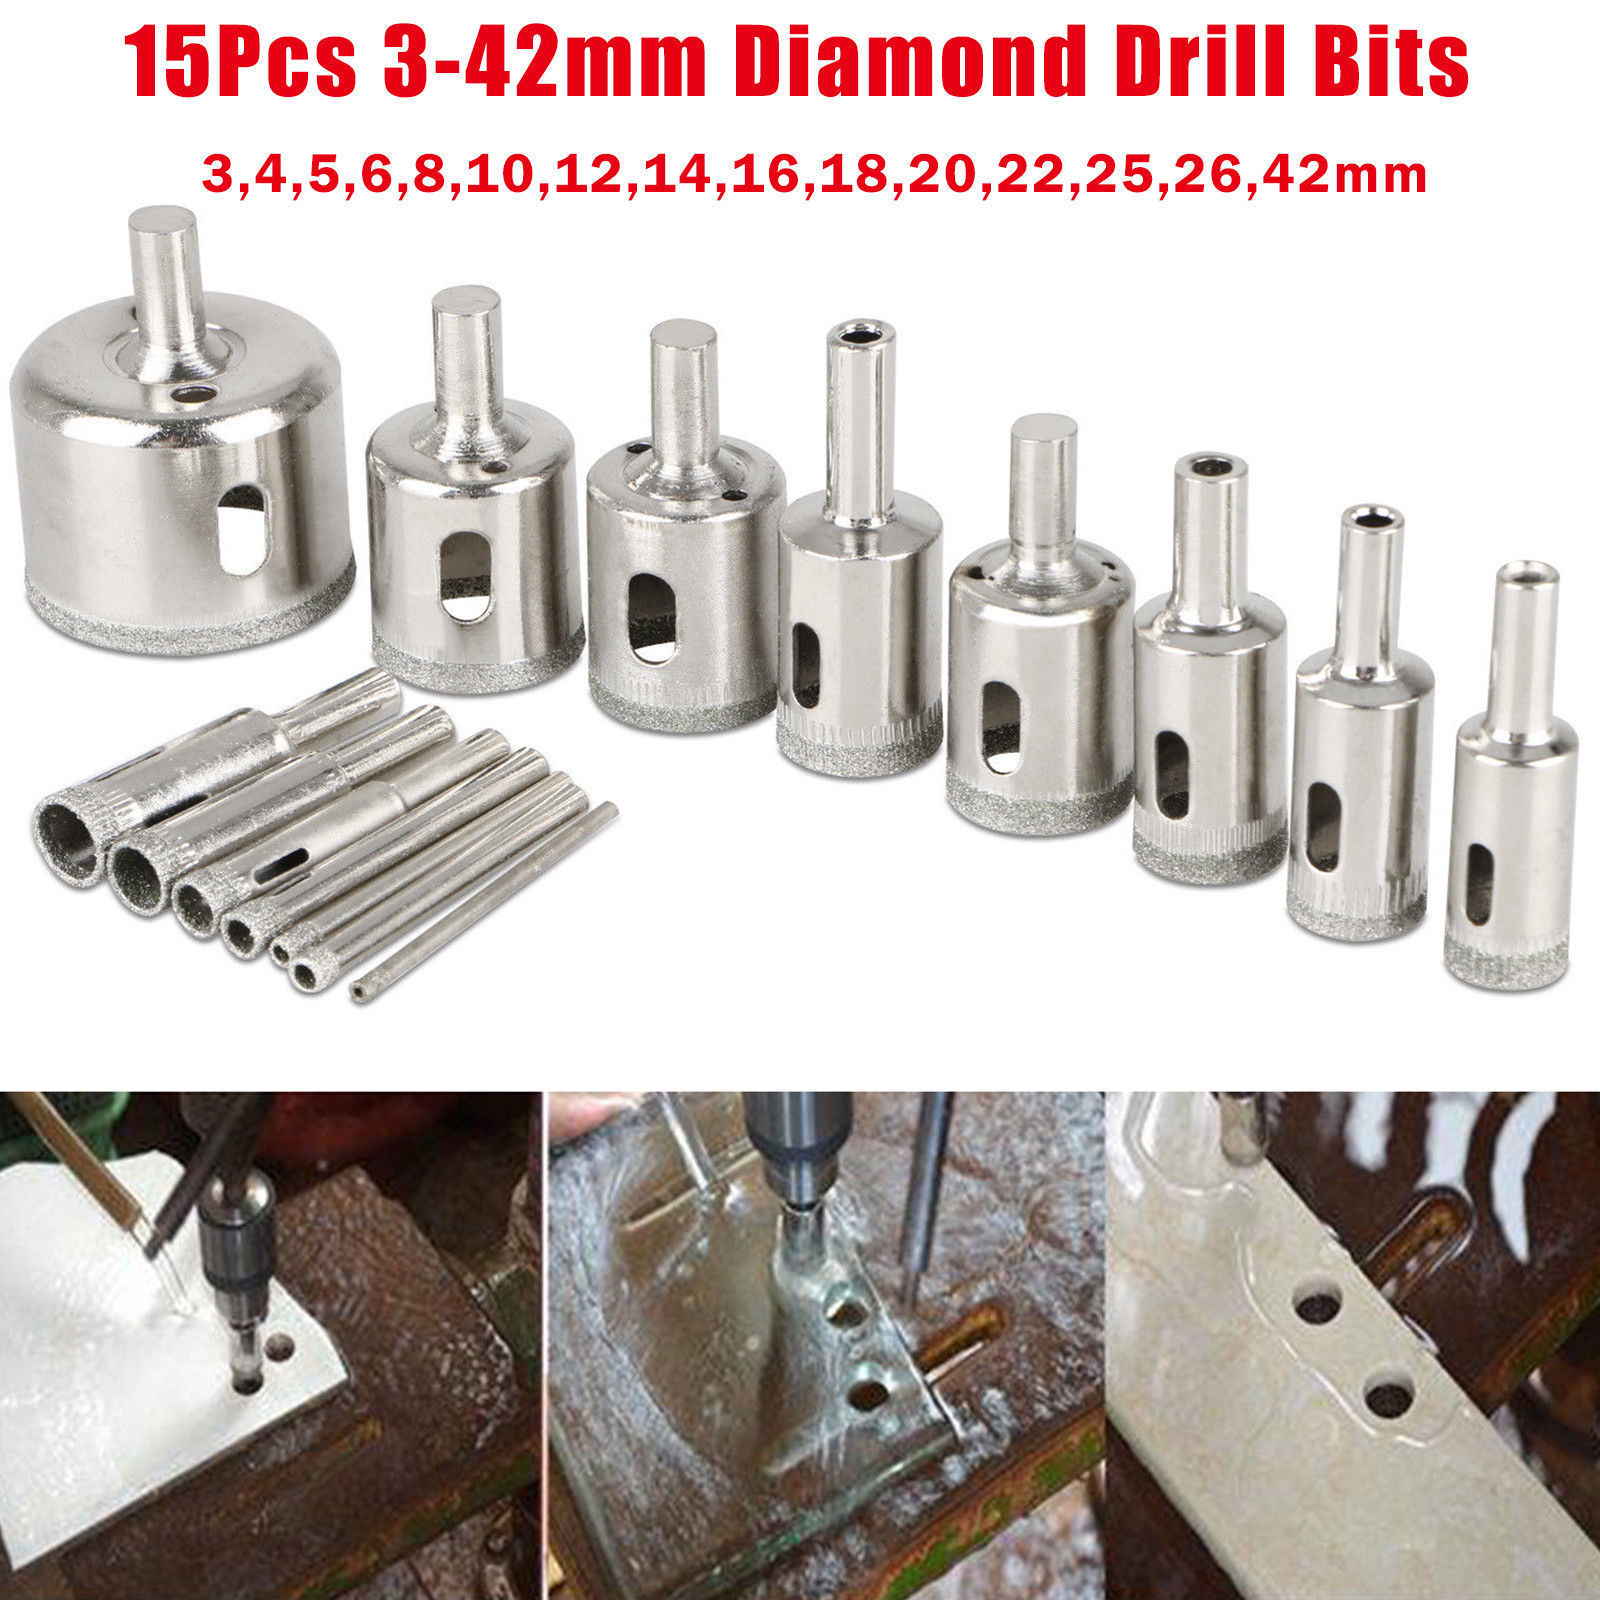 15PCS 3-42mm Diamond Coated Core Hole Saw Drill Bit Set Tools for Glass Marble tile granite Neat Smooth High Quality Metal Material